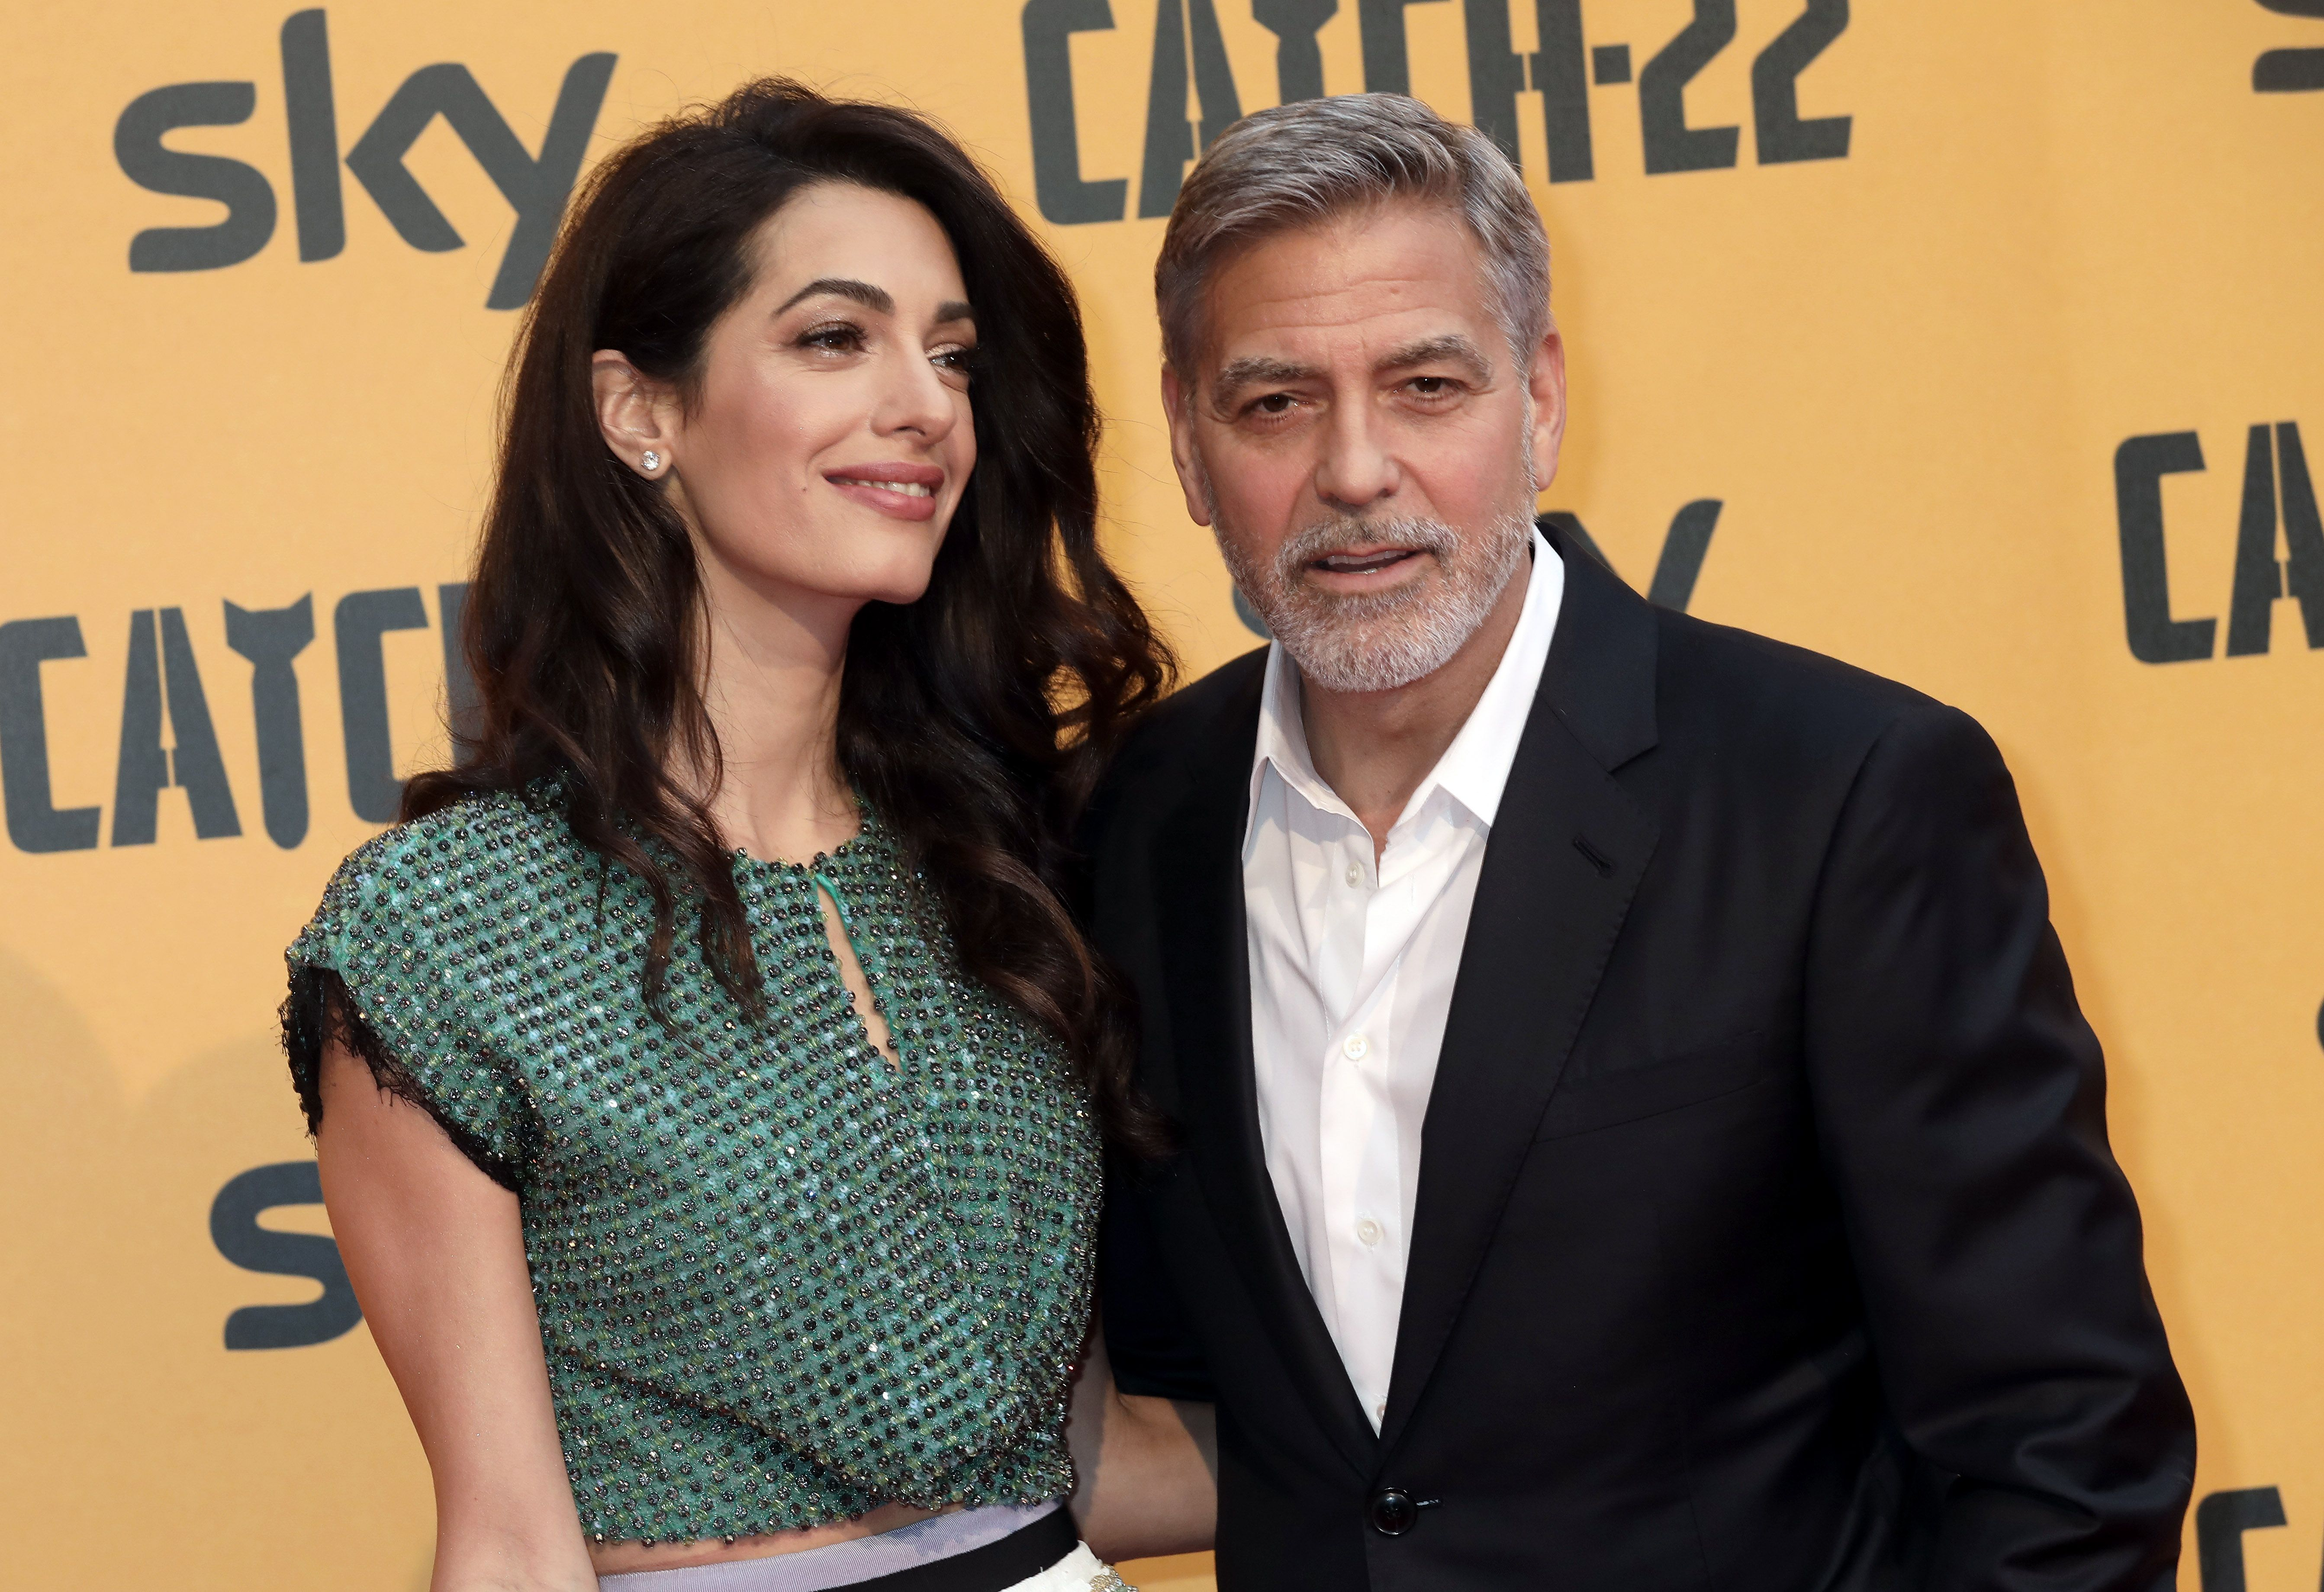 Amal Alamuddin and George Clooney at 'Catch-22' Photocall, a Sky production, at The Space Moderno Cinema on May 13, 2019 | Photo: Getty Images